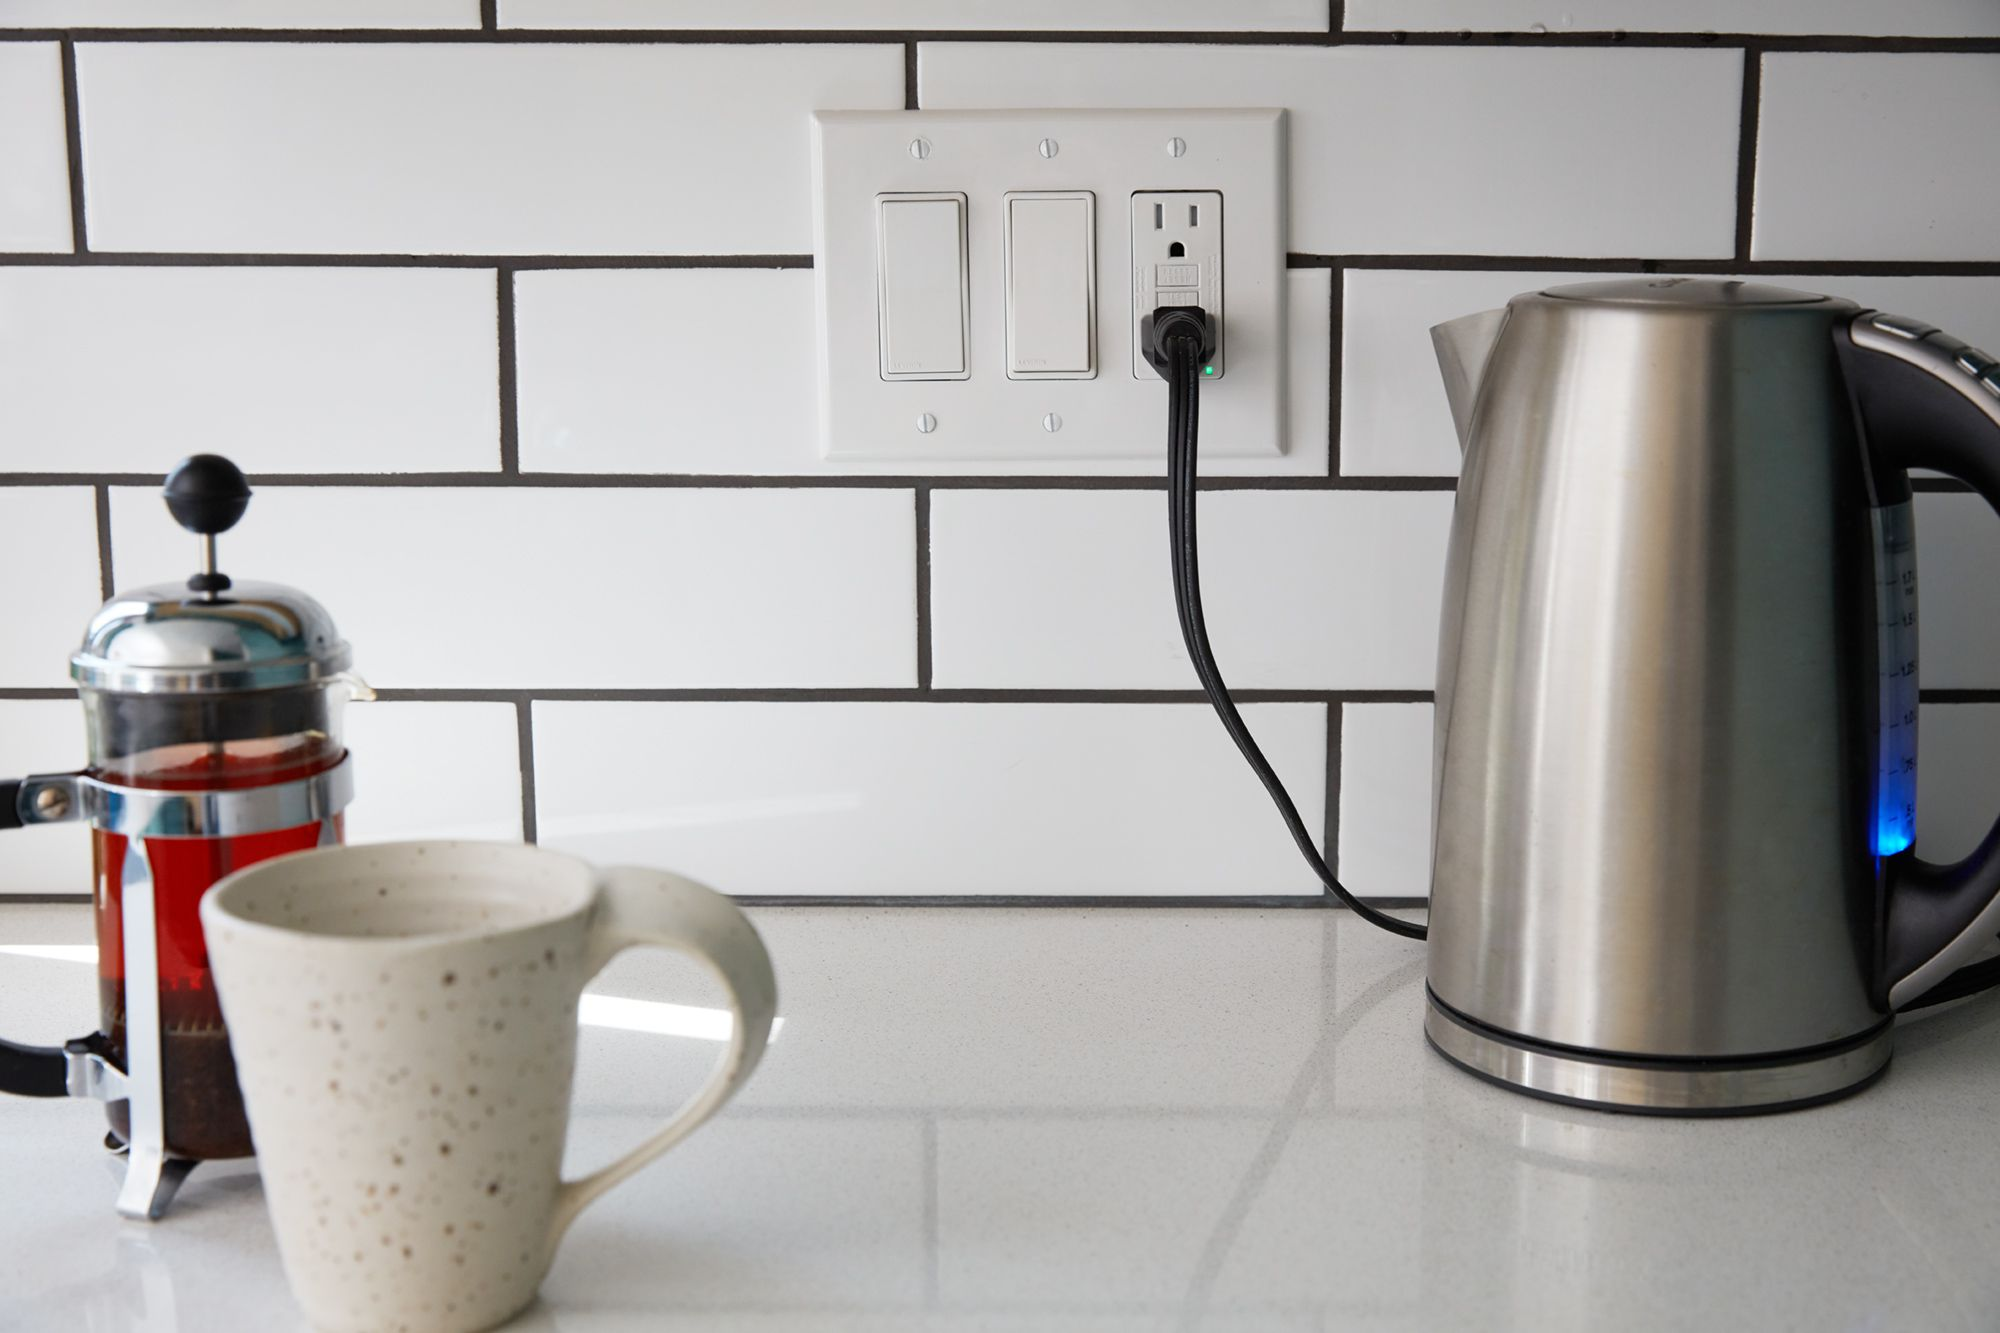 Kitchen Electrical Code